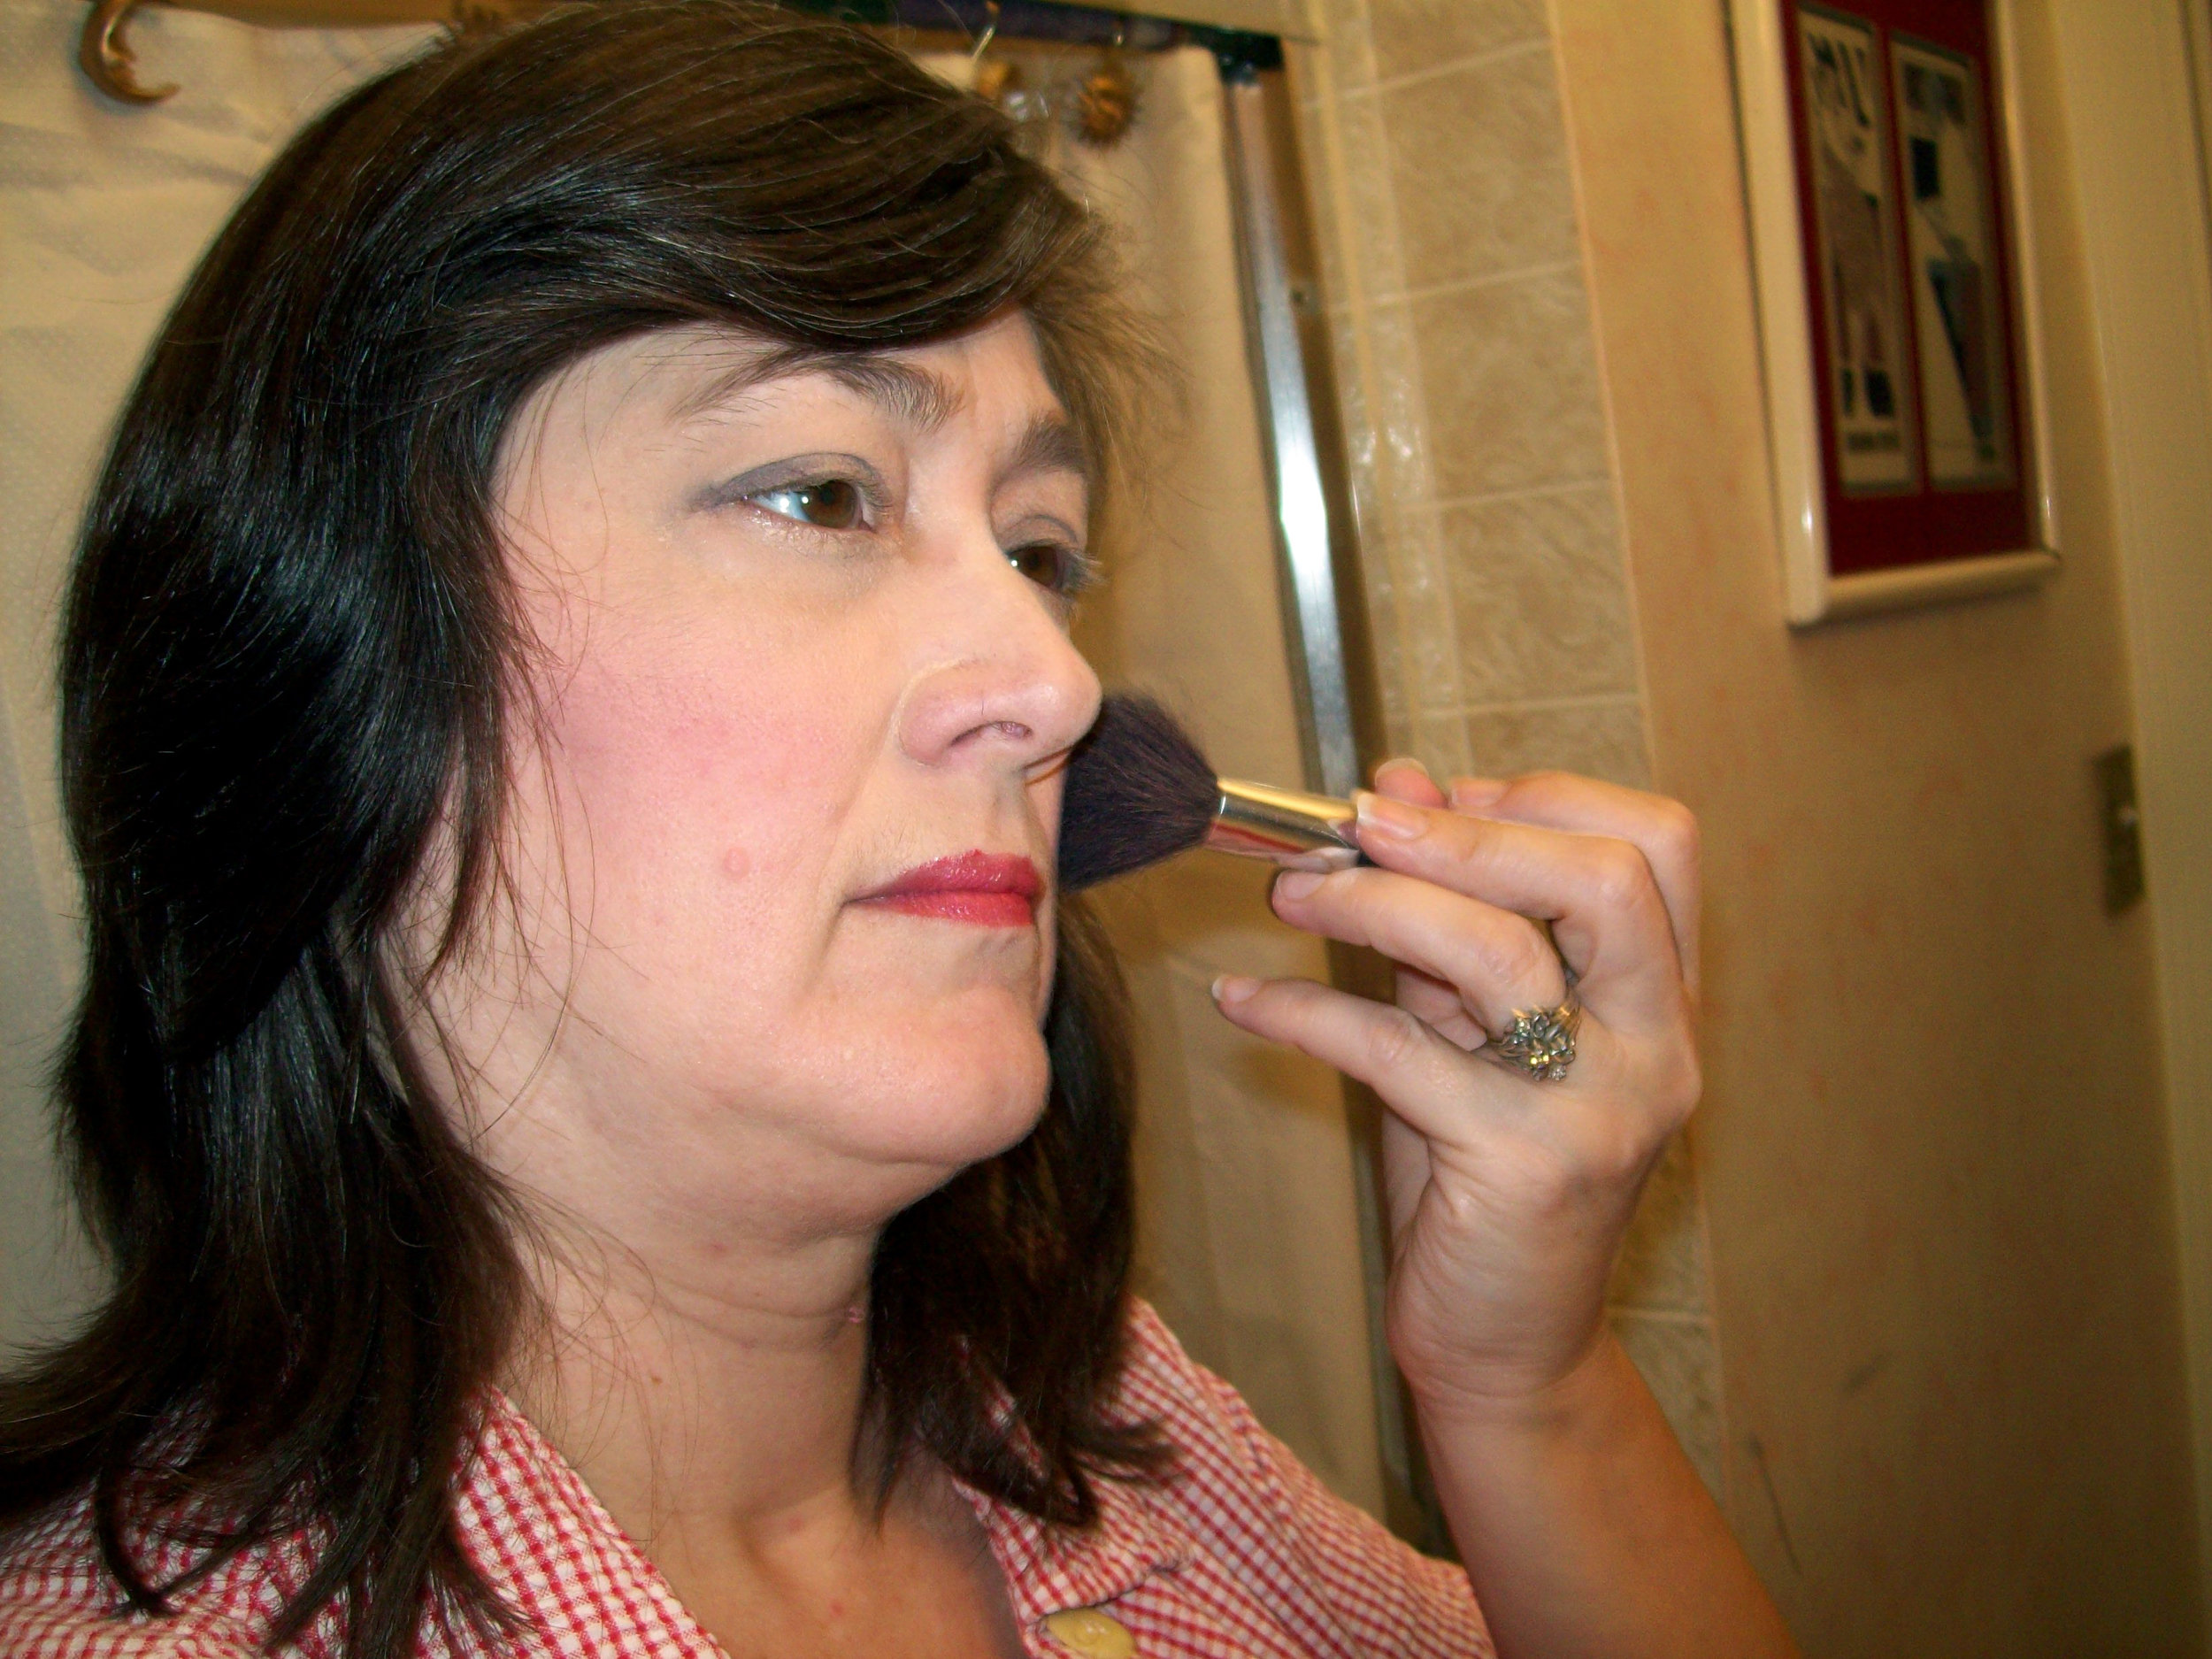 Mom Putting on makeup.jpg